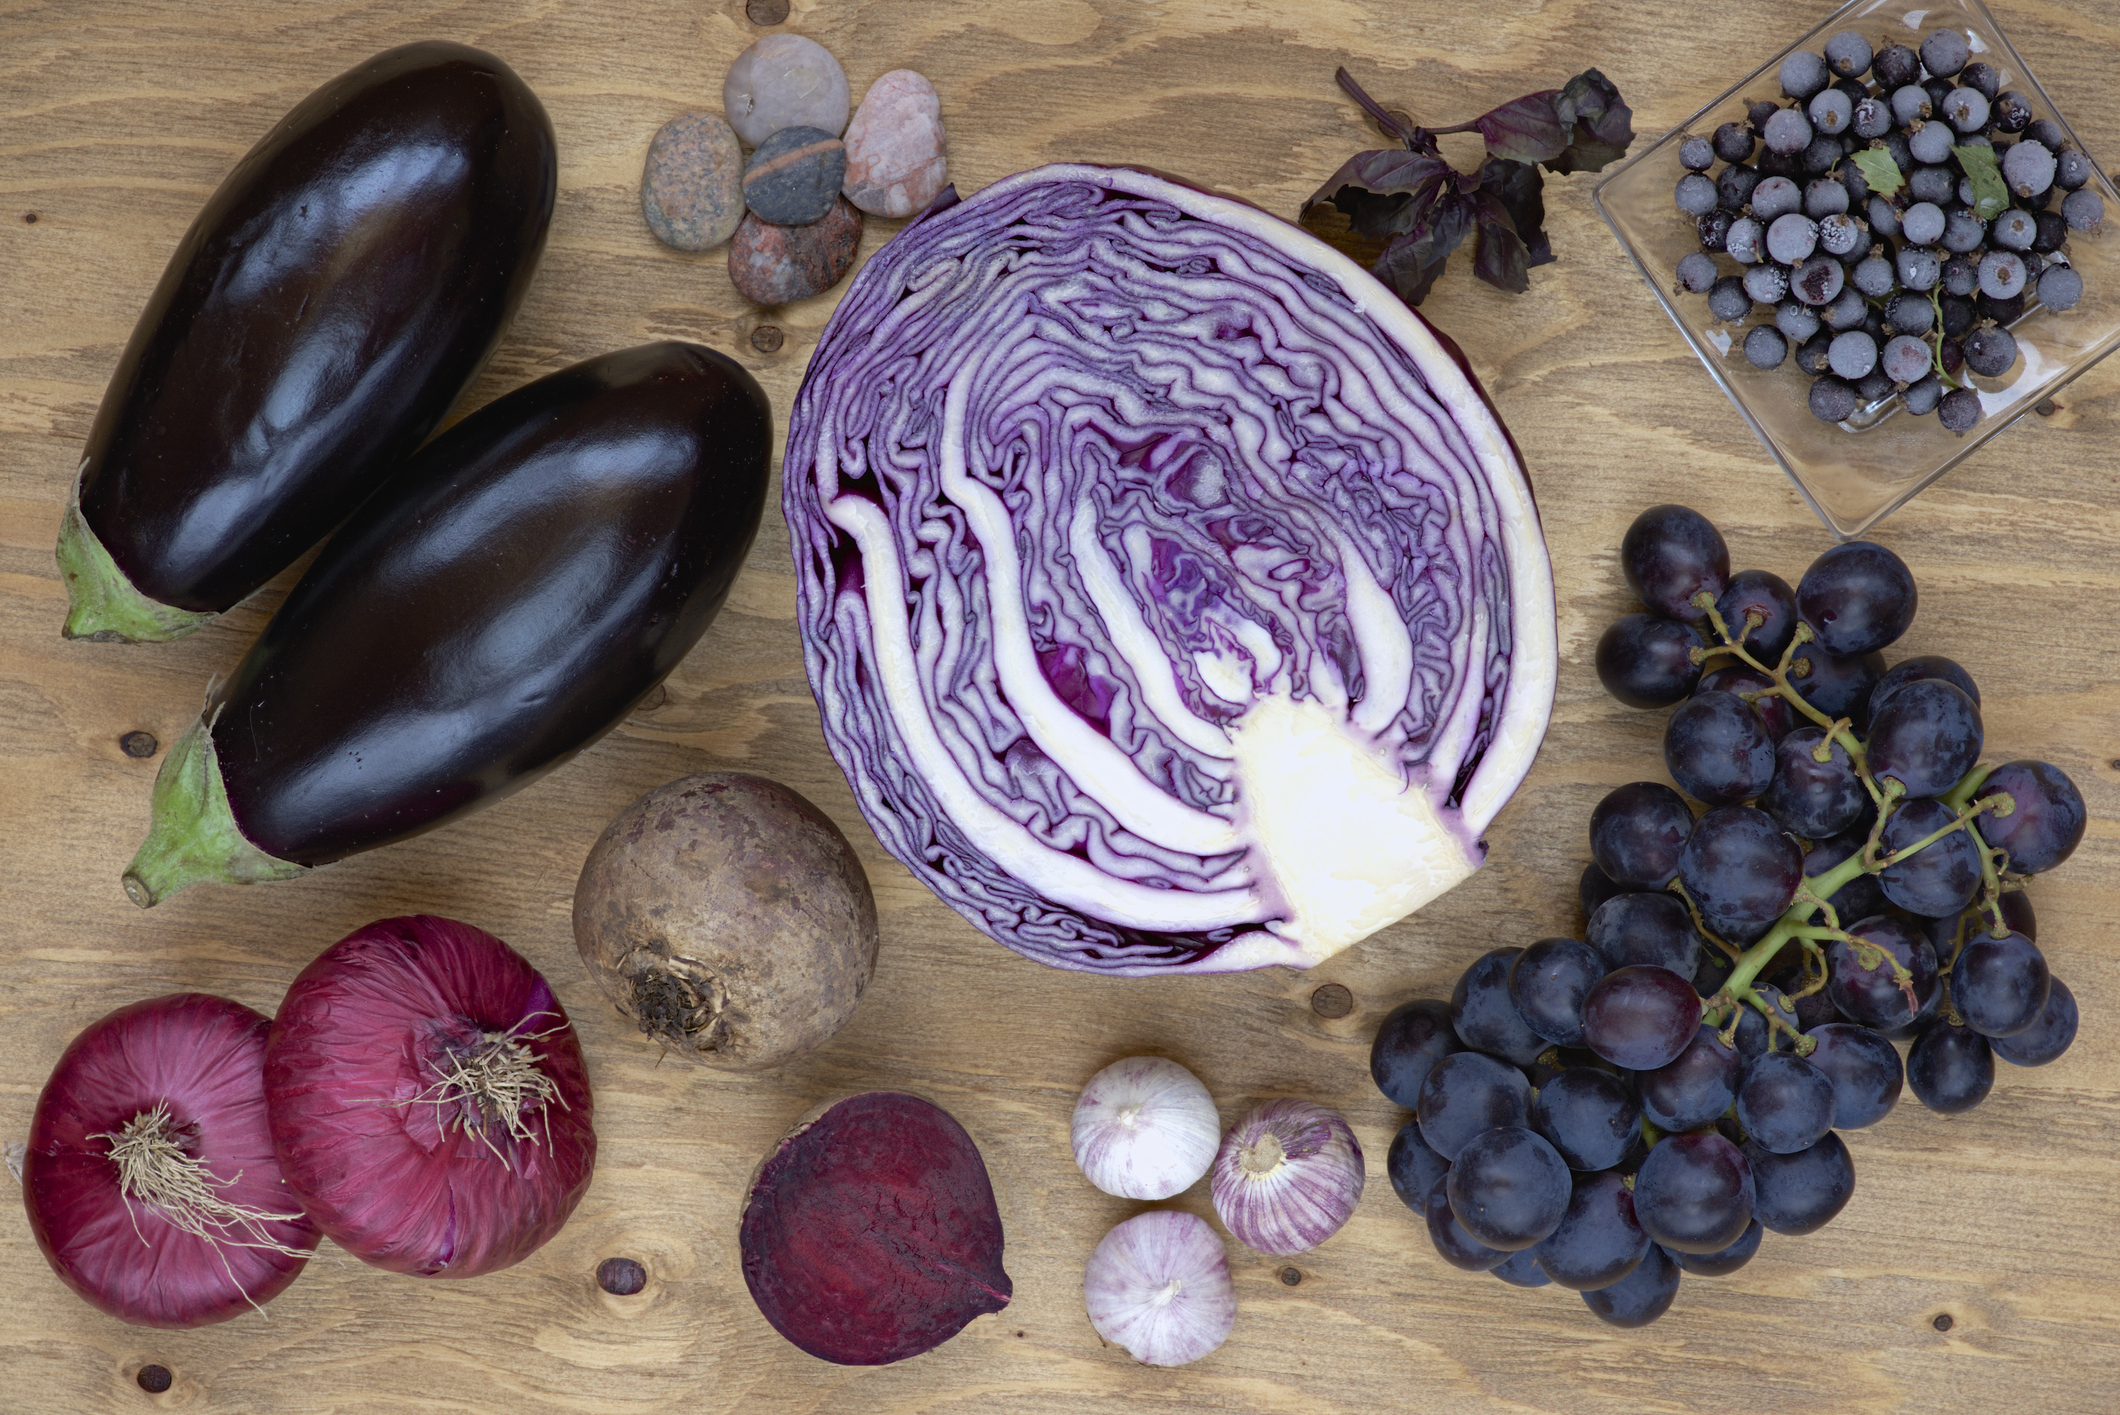 A variety of purple vegetables including eggplant, blueberries and grapes on a wood table.